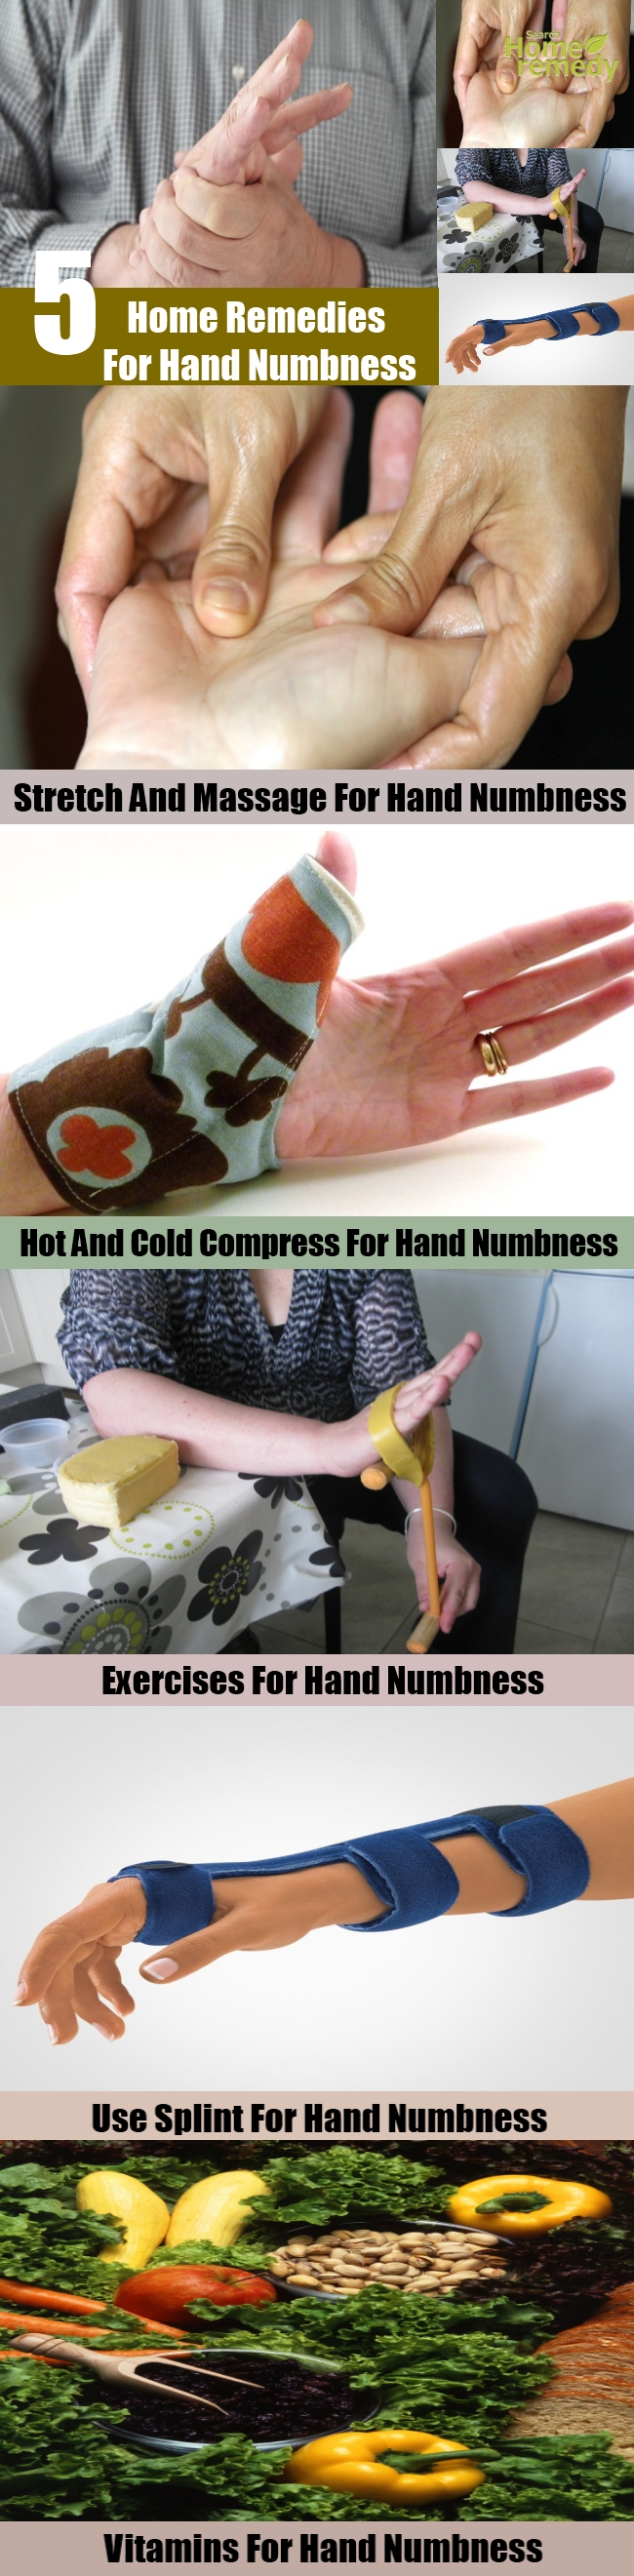 5 Home Remedies For Hand Numbness